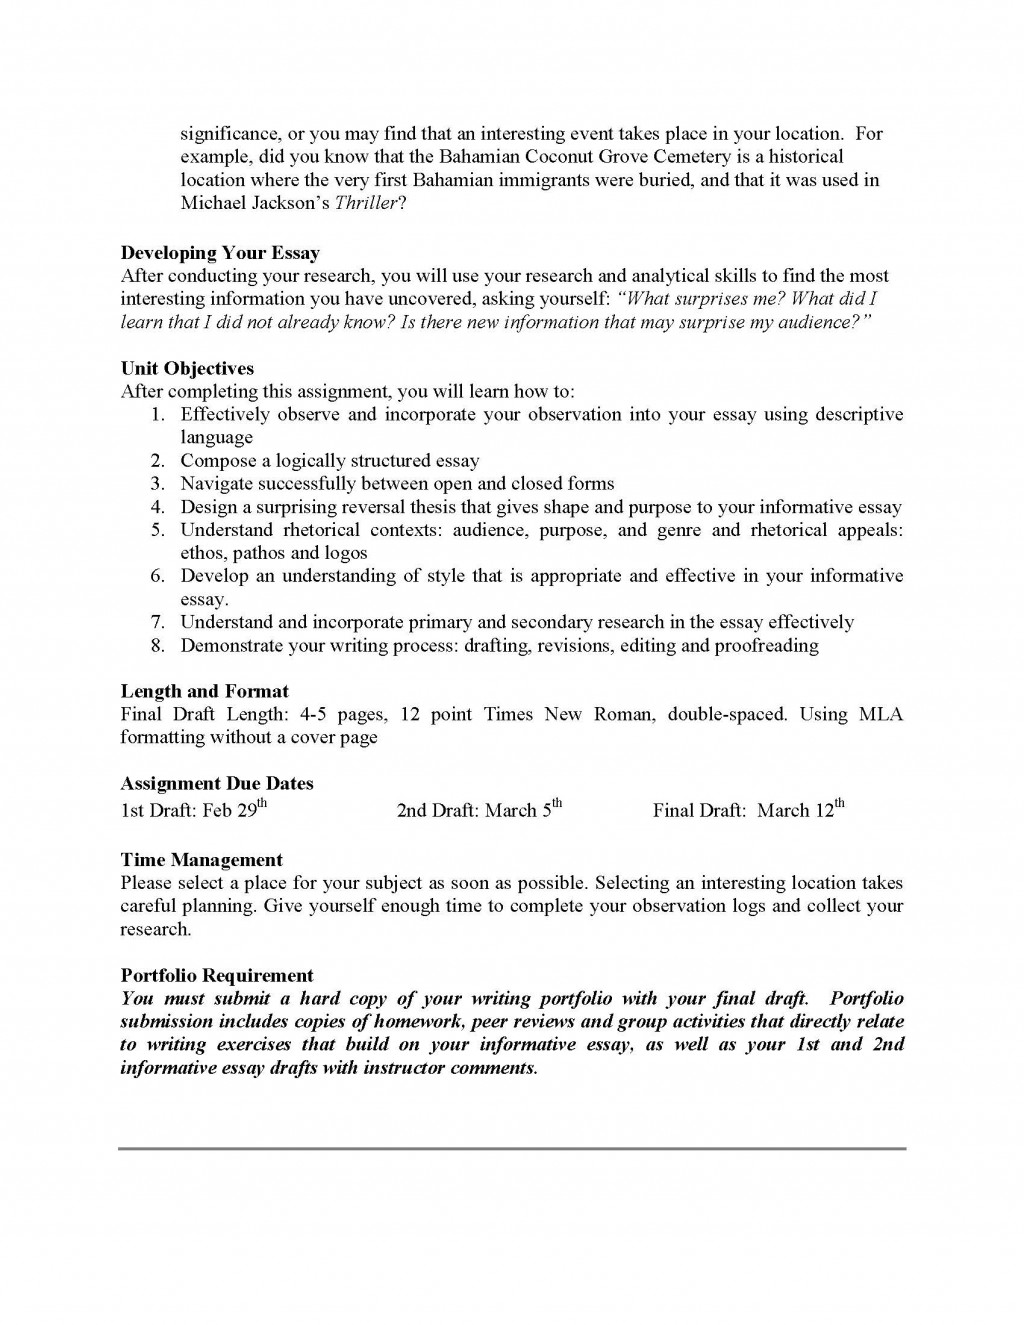 014 Informative Essay Unit Assignment Page 2 Dreaded Graphic Organizer Middle School Rubric 6th Grade Topics Large